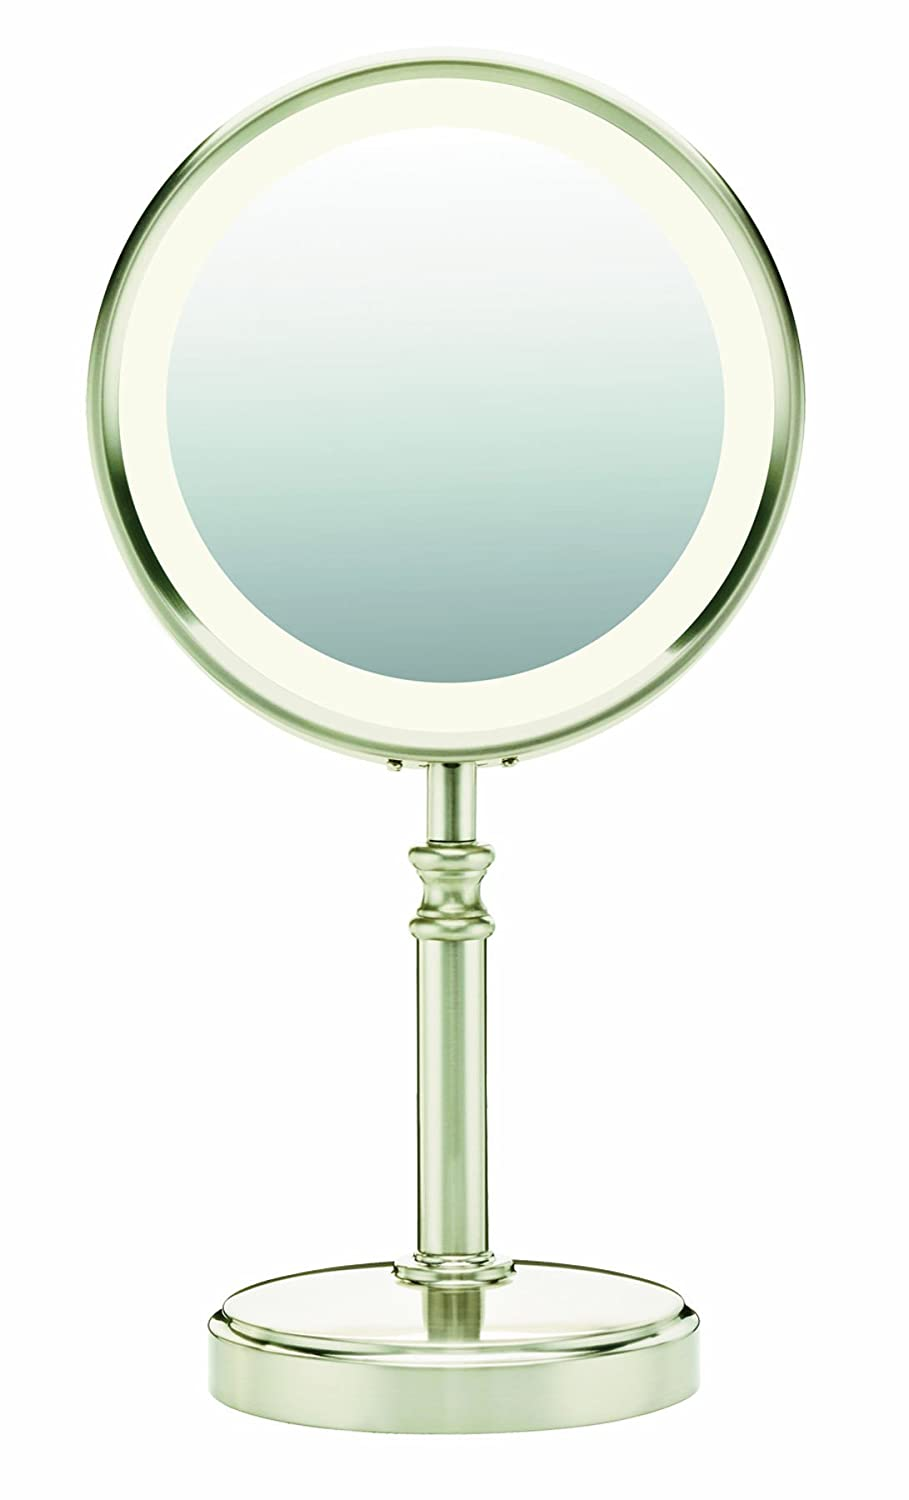 amazoncom conair round shaped fluorescent lightening doublesided lighted makeup mirror 1x10x satin nickel finish personal makeup - Lighted Vanity Mirror